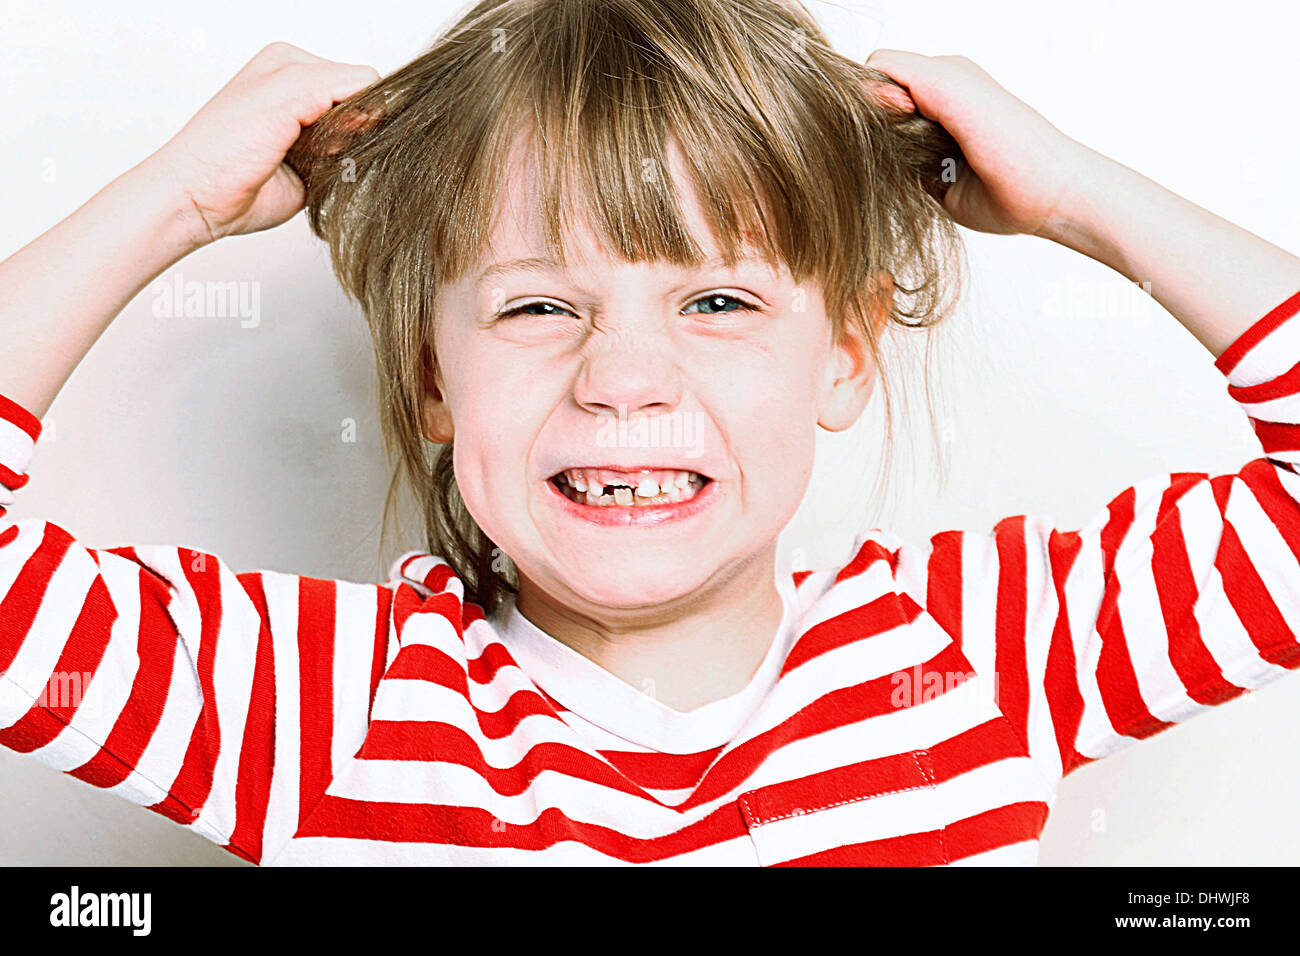 ANGRY CHILD - Stock Image